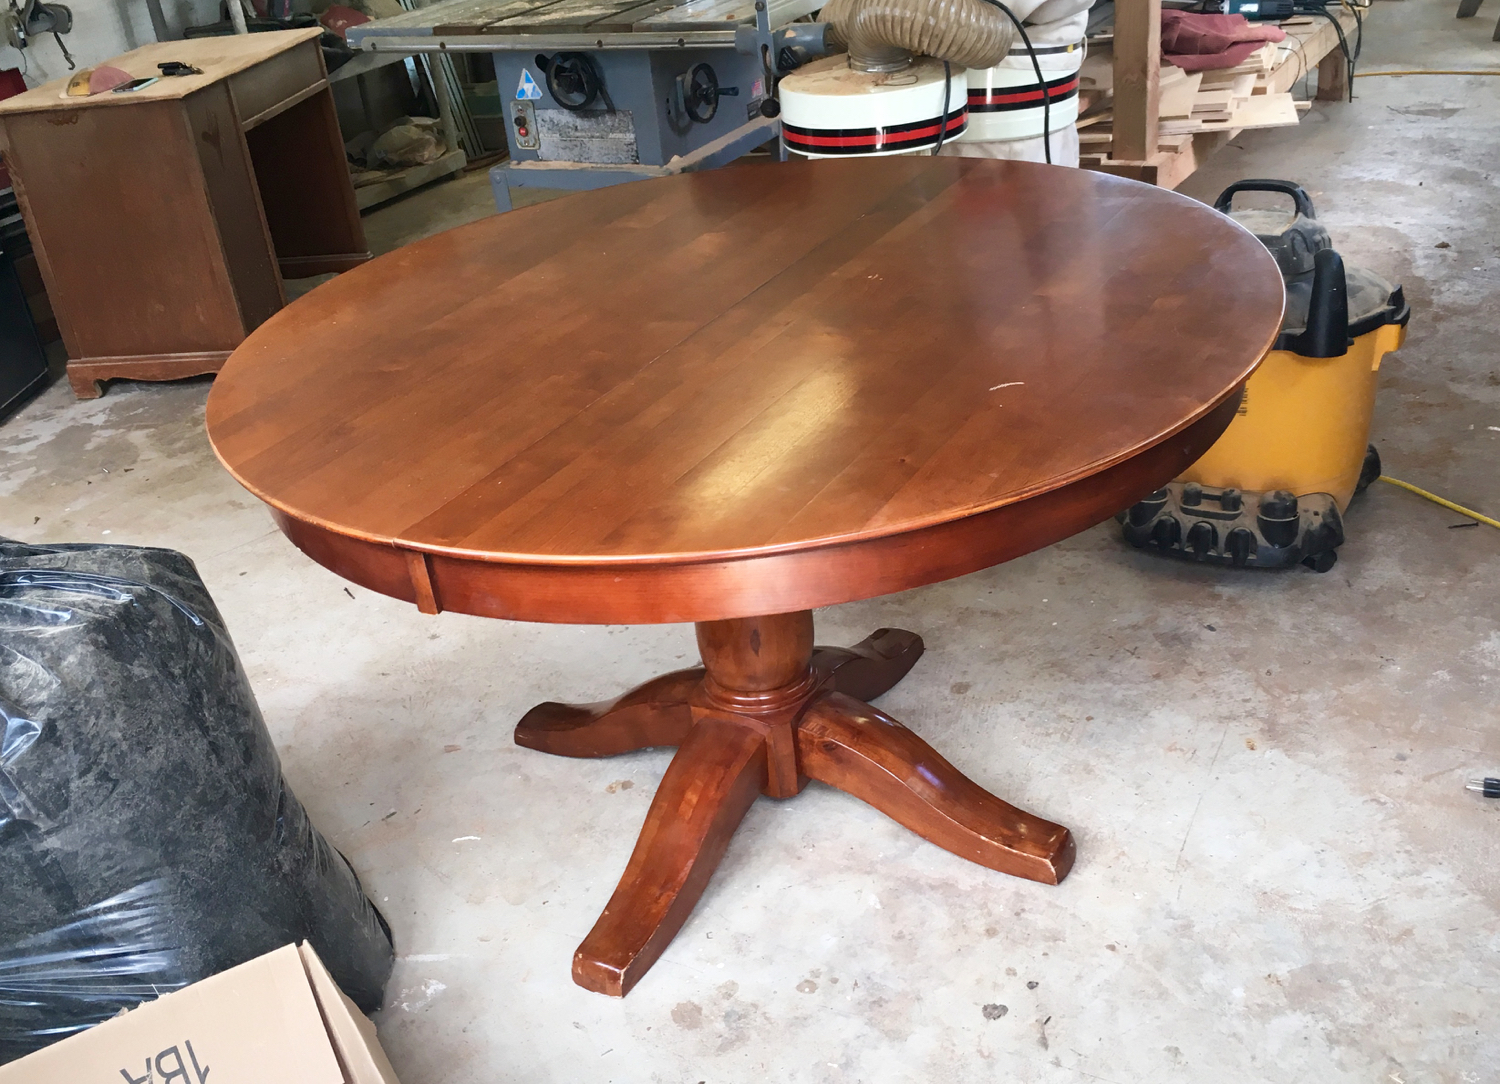 Before picture of the dining table. It's in decent shape, some dings on the top and feet.